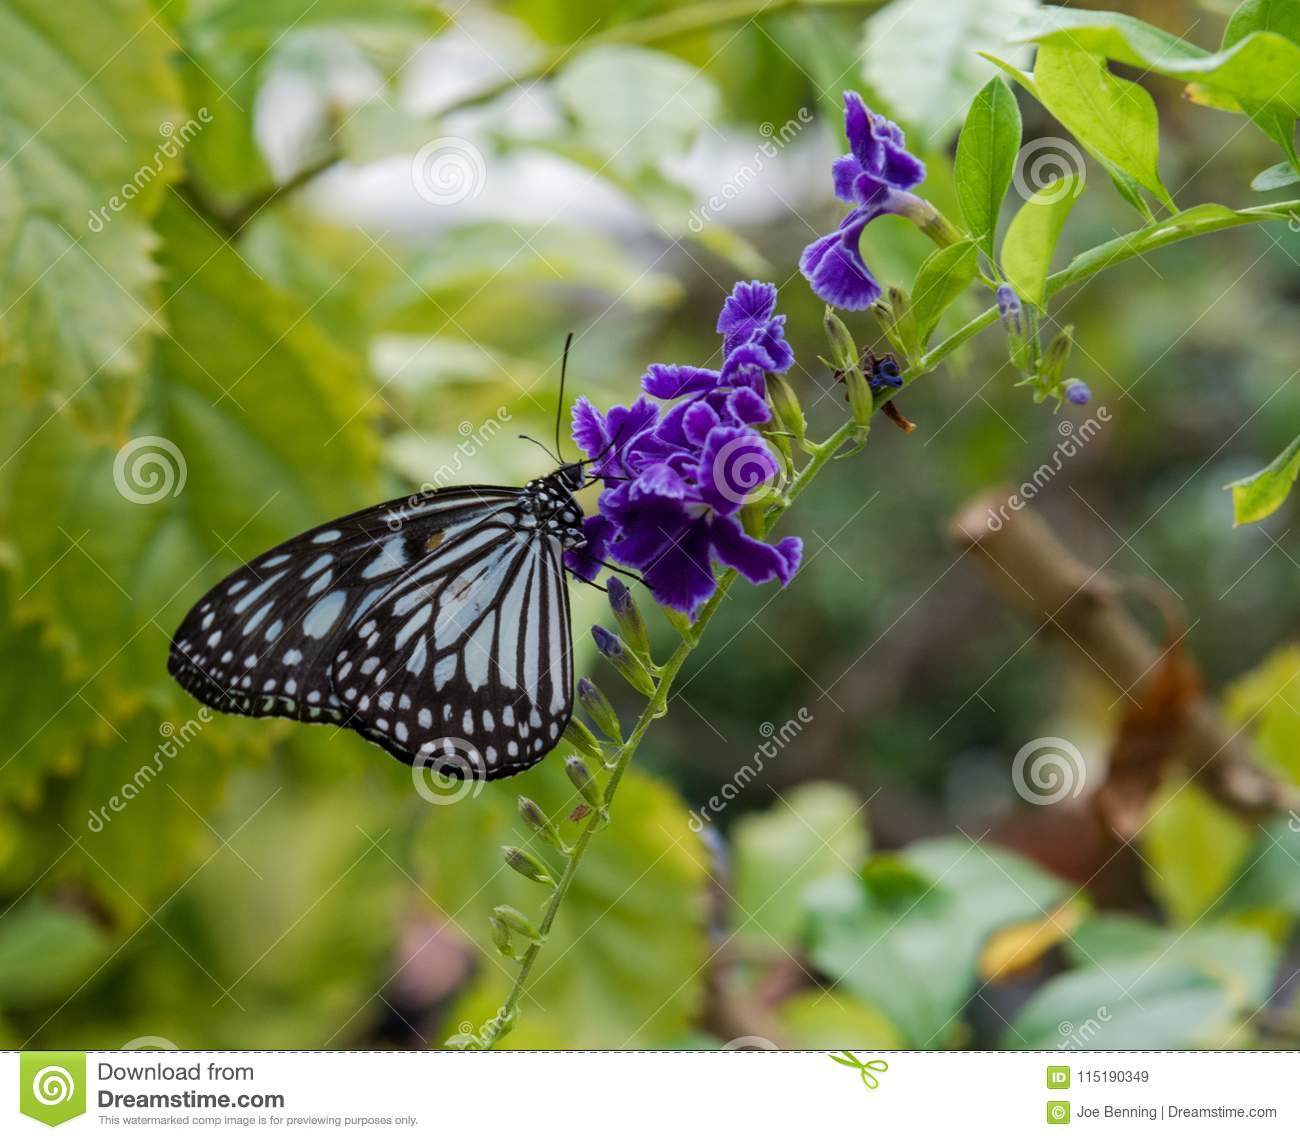 Paper kite butterfly clings to a branch stock image image of download paper kite butterfly clings to a branch stock image image of flower beauty mightylinksfo